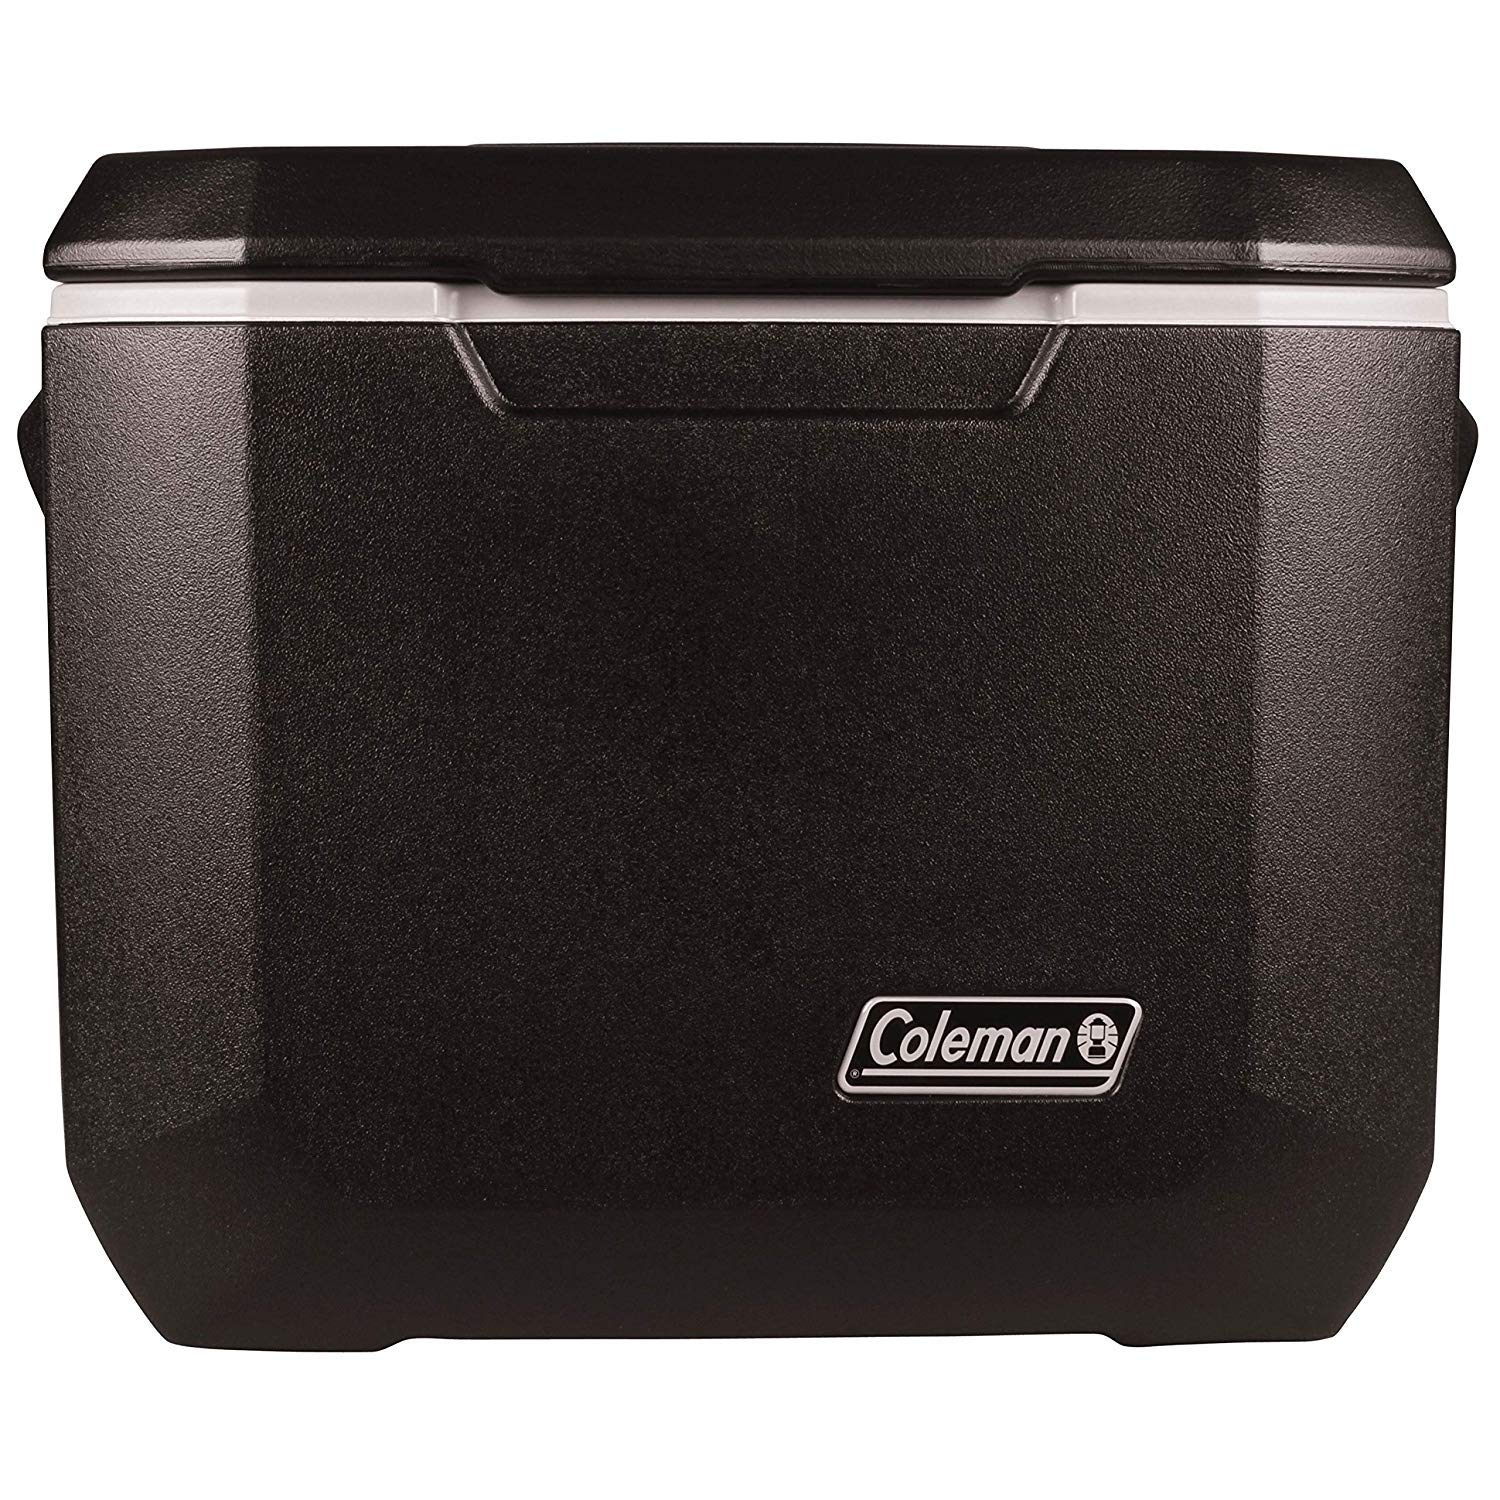 Coleman Wheeled Cooler | Xtreme Cooler Keeps Ice Up to 5 Days | Heavy-Duty 50-Quart Cooler with Wheels for Camping, BBQs, Tailgating & Outdoor Activities (2 Pack, 50-Quart) by Coleman